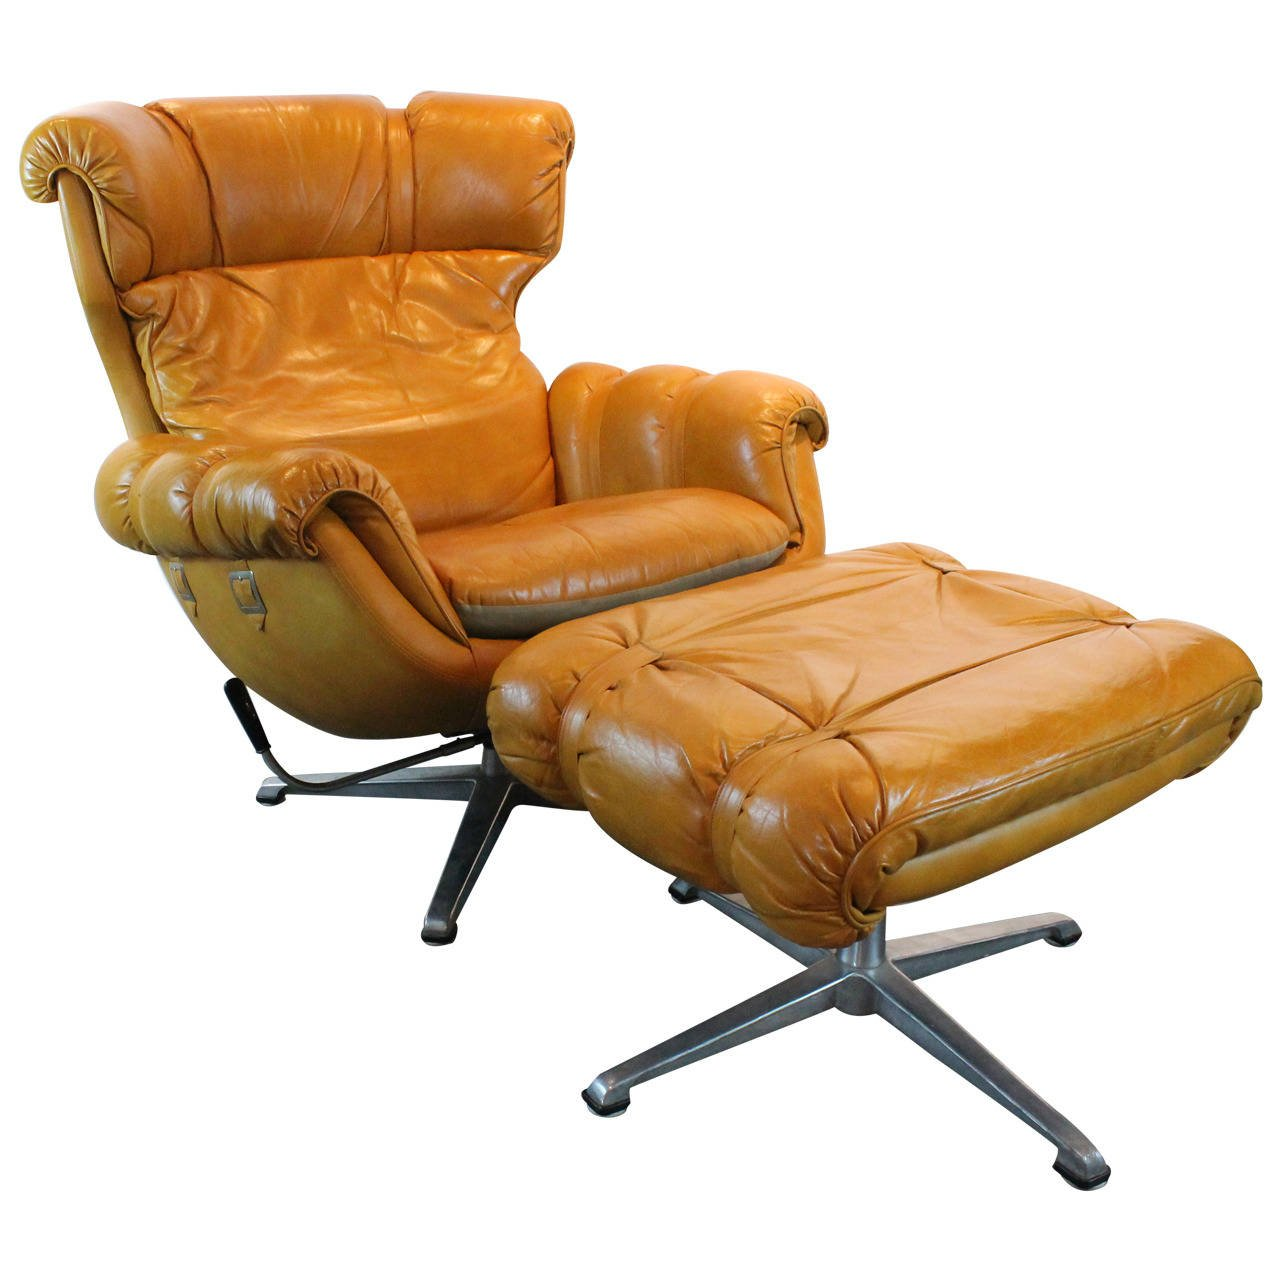 Overman Lounge Chair photo - 5